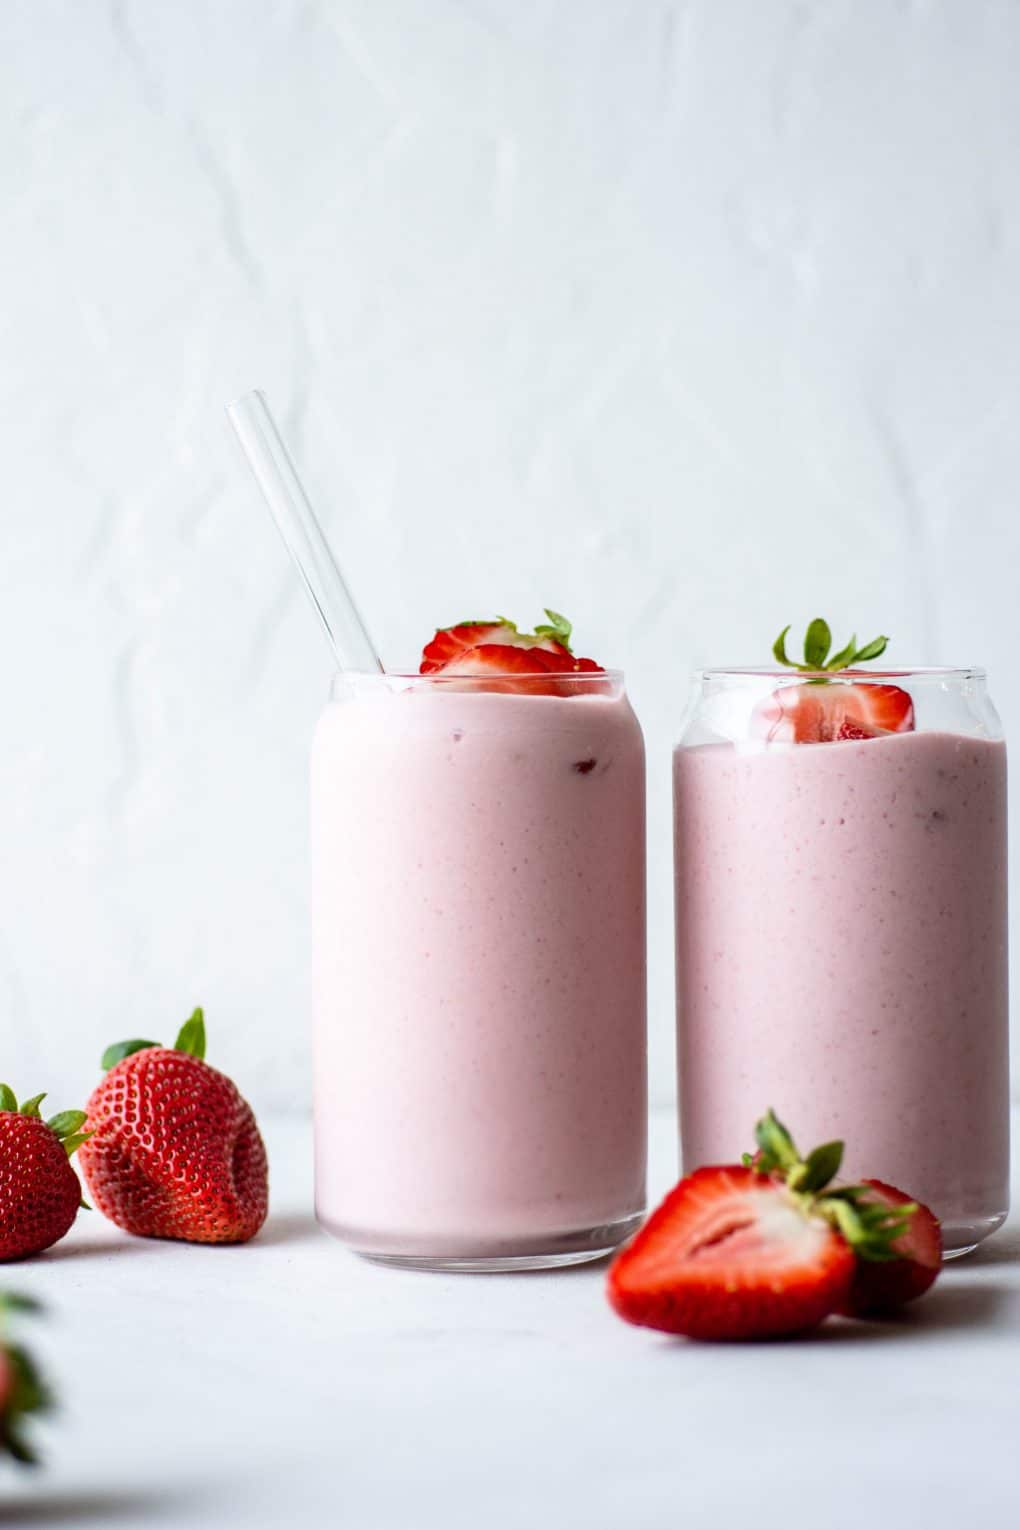 Close up view of two side by side pink strawberry milkshake from a clear glass jar into a cup surrounded by fresh strawberries on a white background